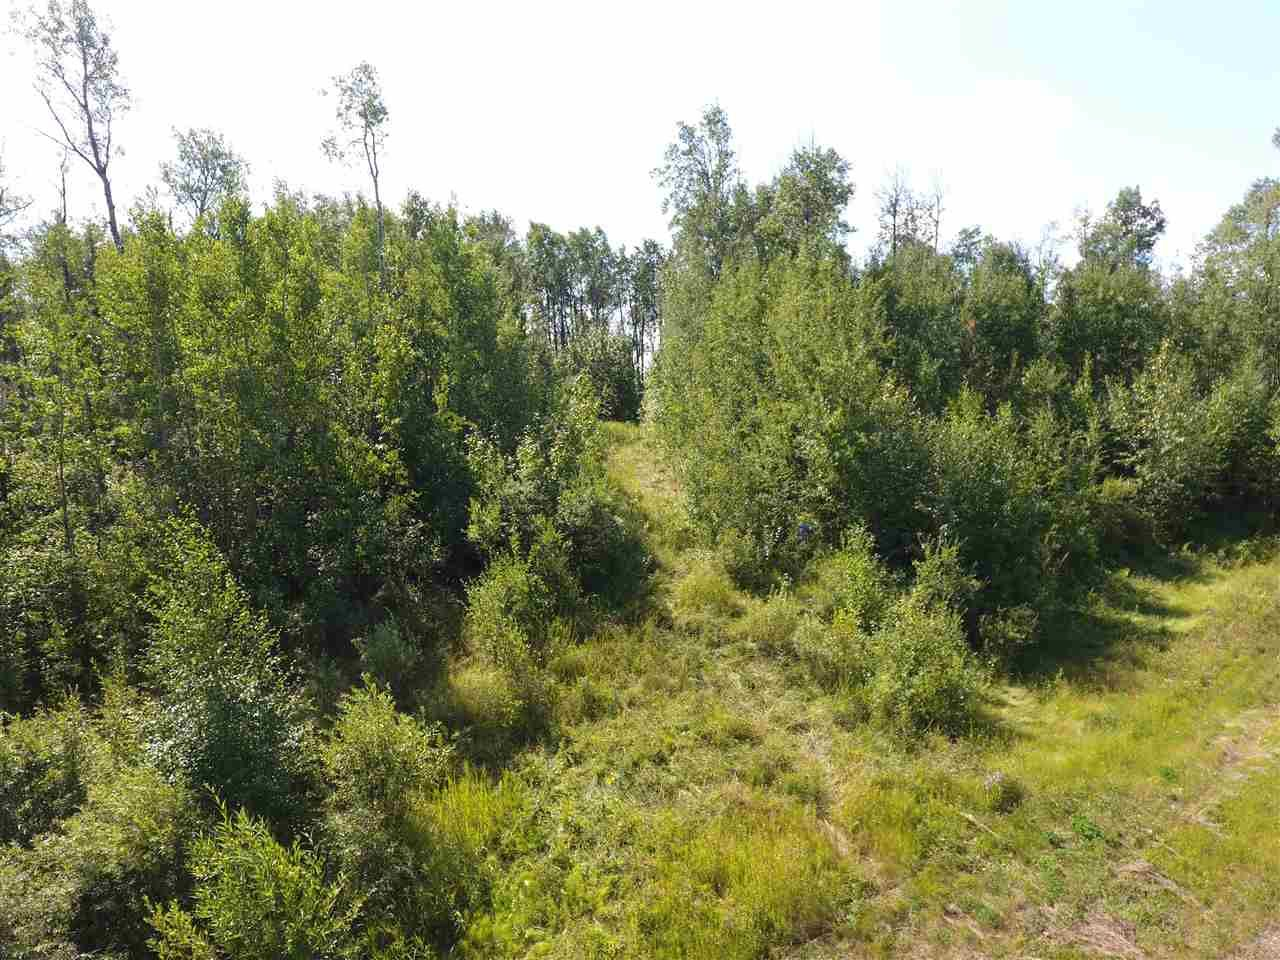 Photo 5: Photos: 22 Morgan Way: Rural Lac Ste. Anne County Rural Land/Vacant Lot for sale : MLS®# E4209833